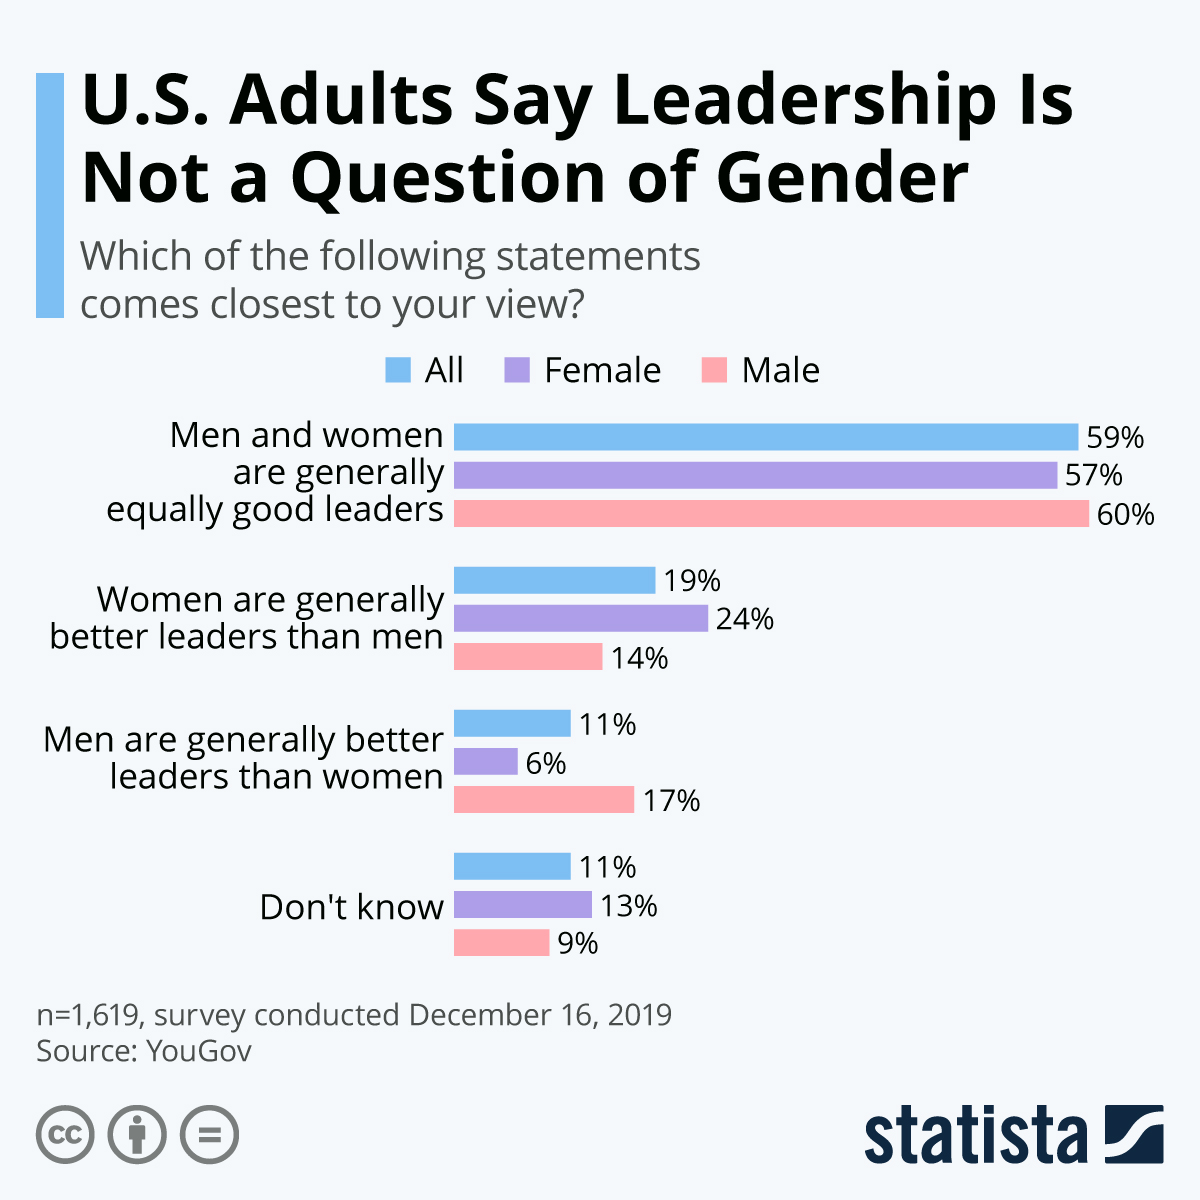 Do women make better leaders than men?